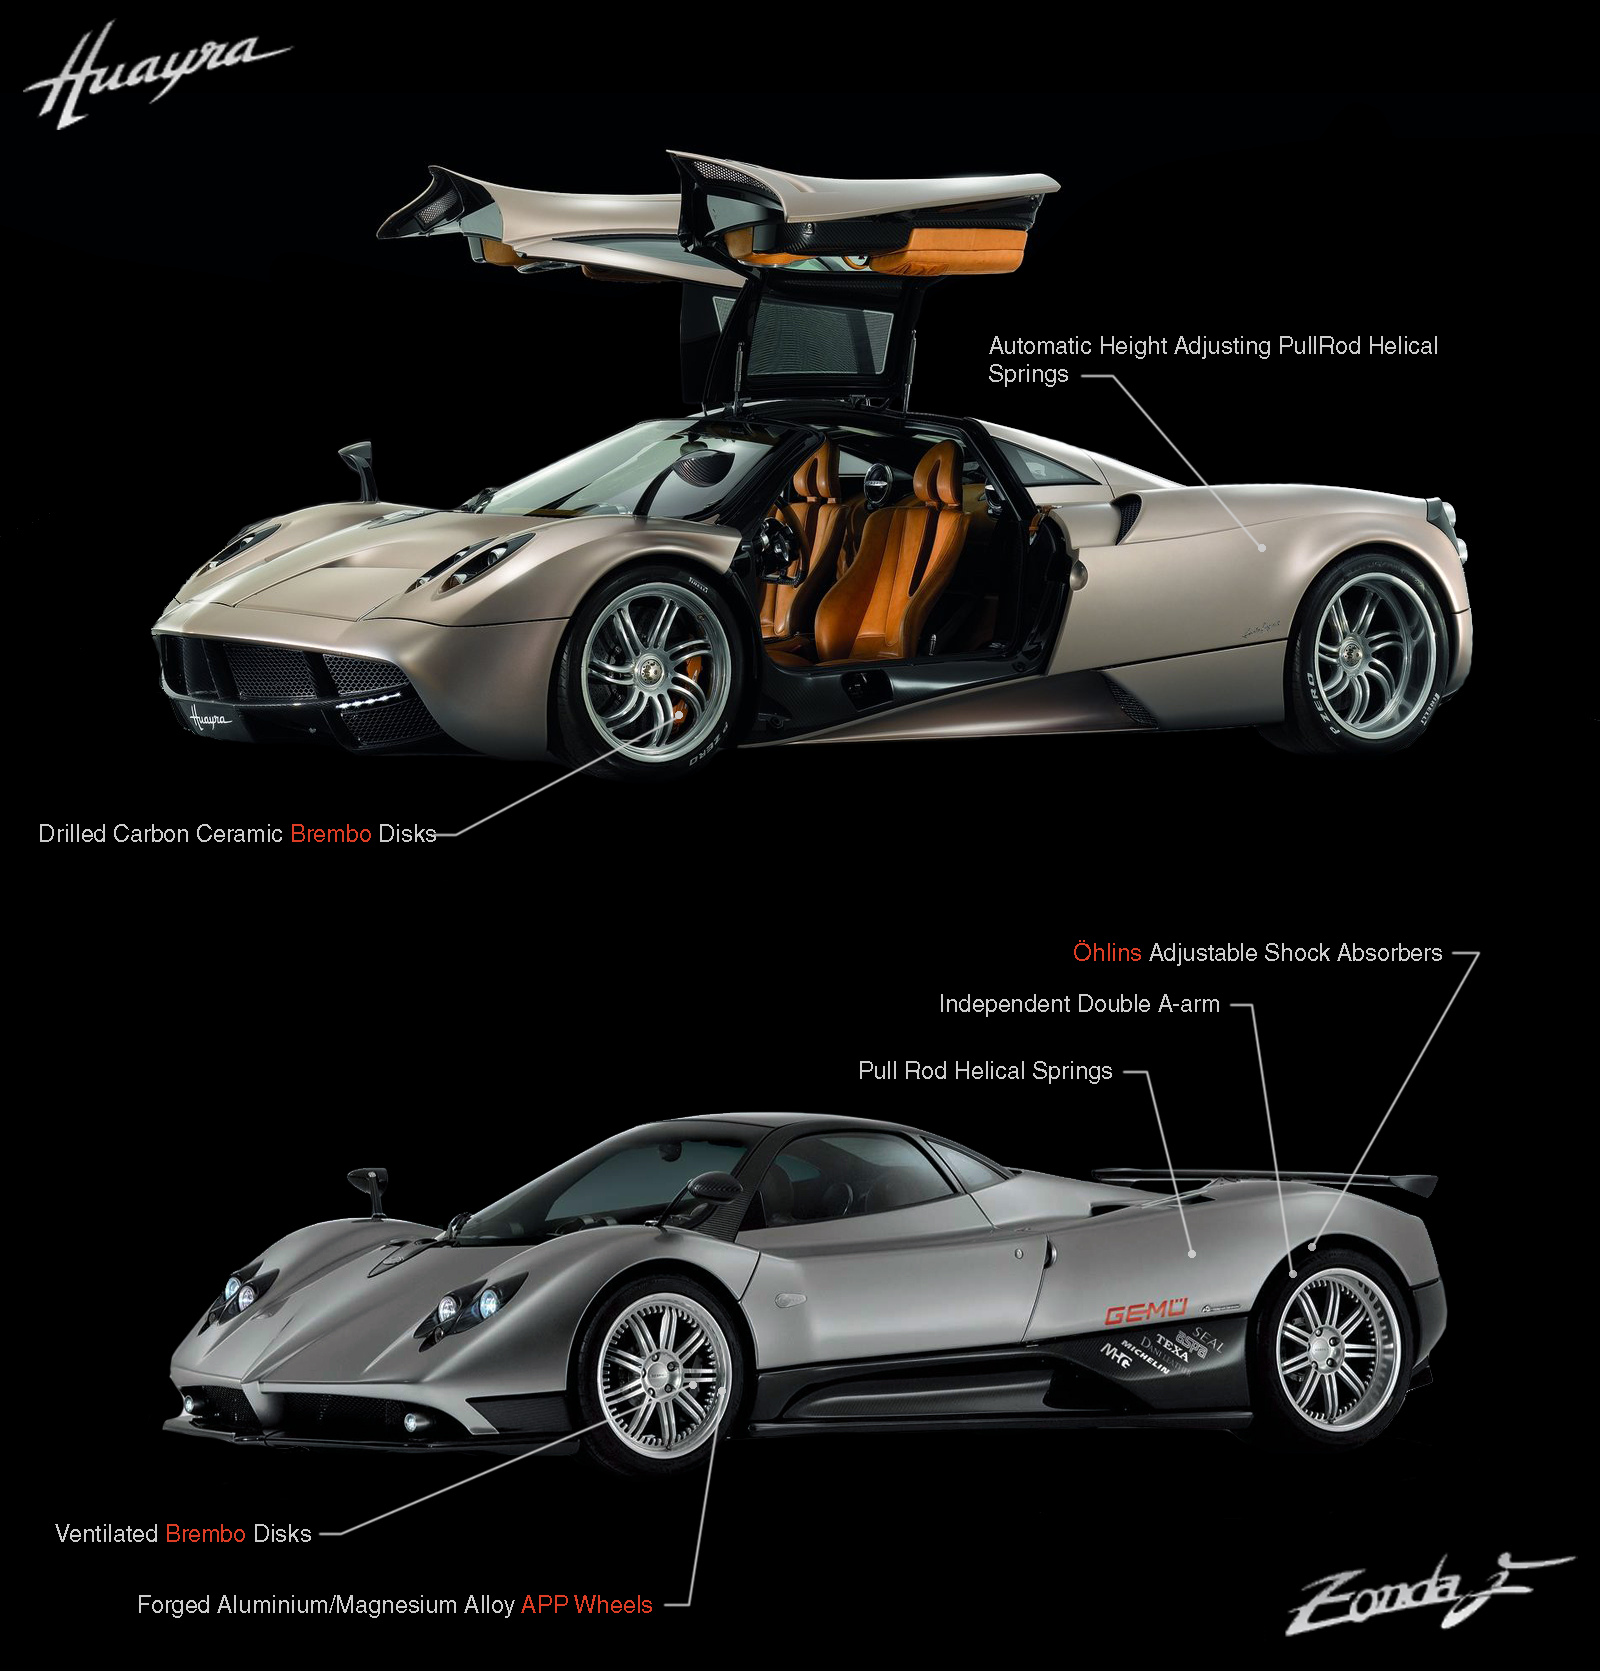 Supercar, Pagani, Huayra, Zonda, Legacy, Comparison, Suspension and Wheels